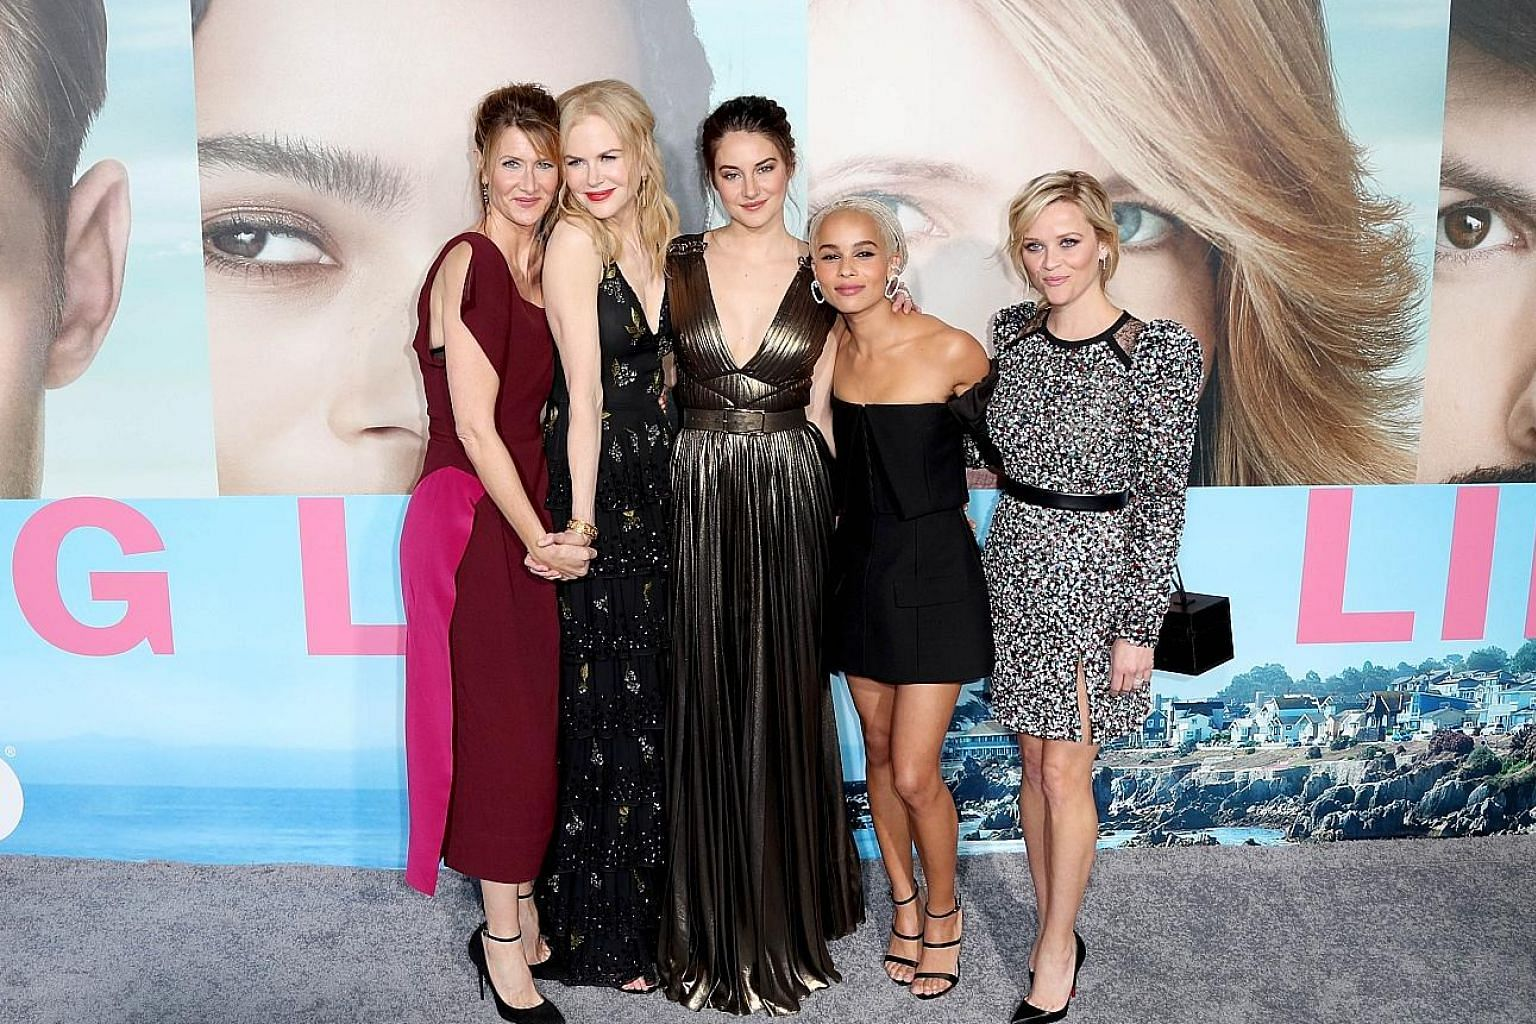 The stars of Big Little Lies (from left) Laura Dern, Nicole Kidman, Shailene Woodley, Zoe Kravitz and Reese Witherspoon at the premiere of the HBO series. (From left) Reese Witherspoon, Shailene Woodley and Nicole Kidman in HBO's Big Little Lies.